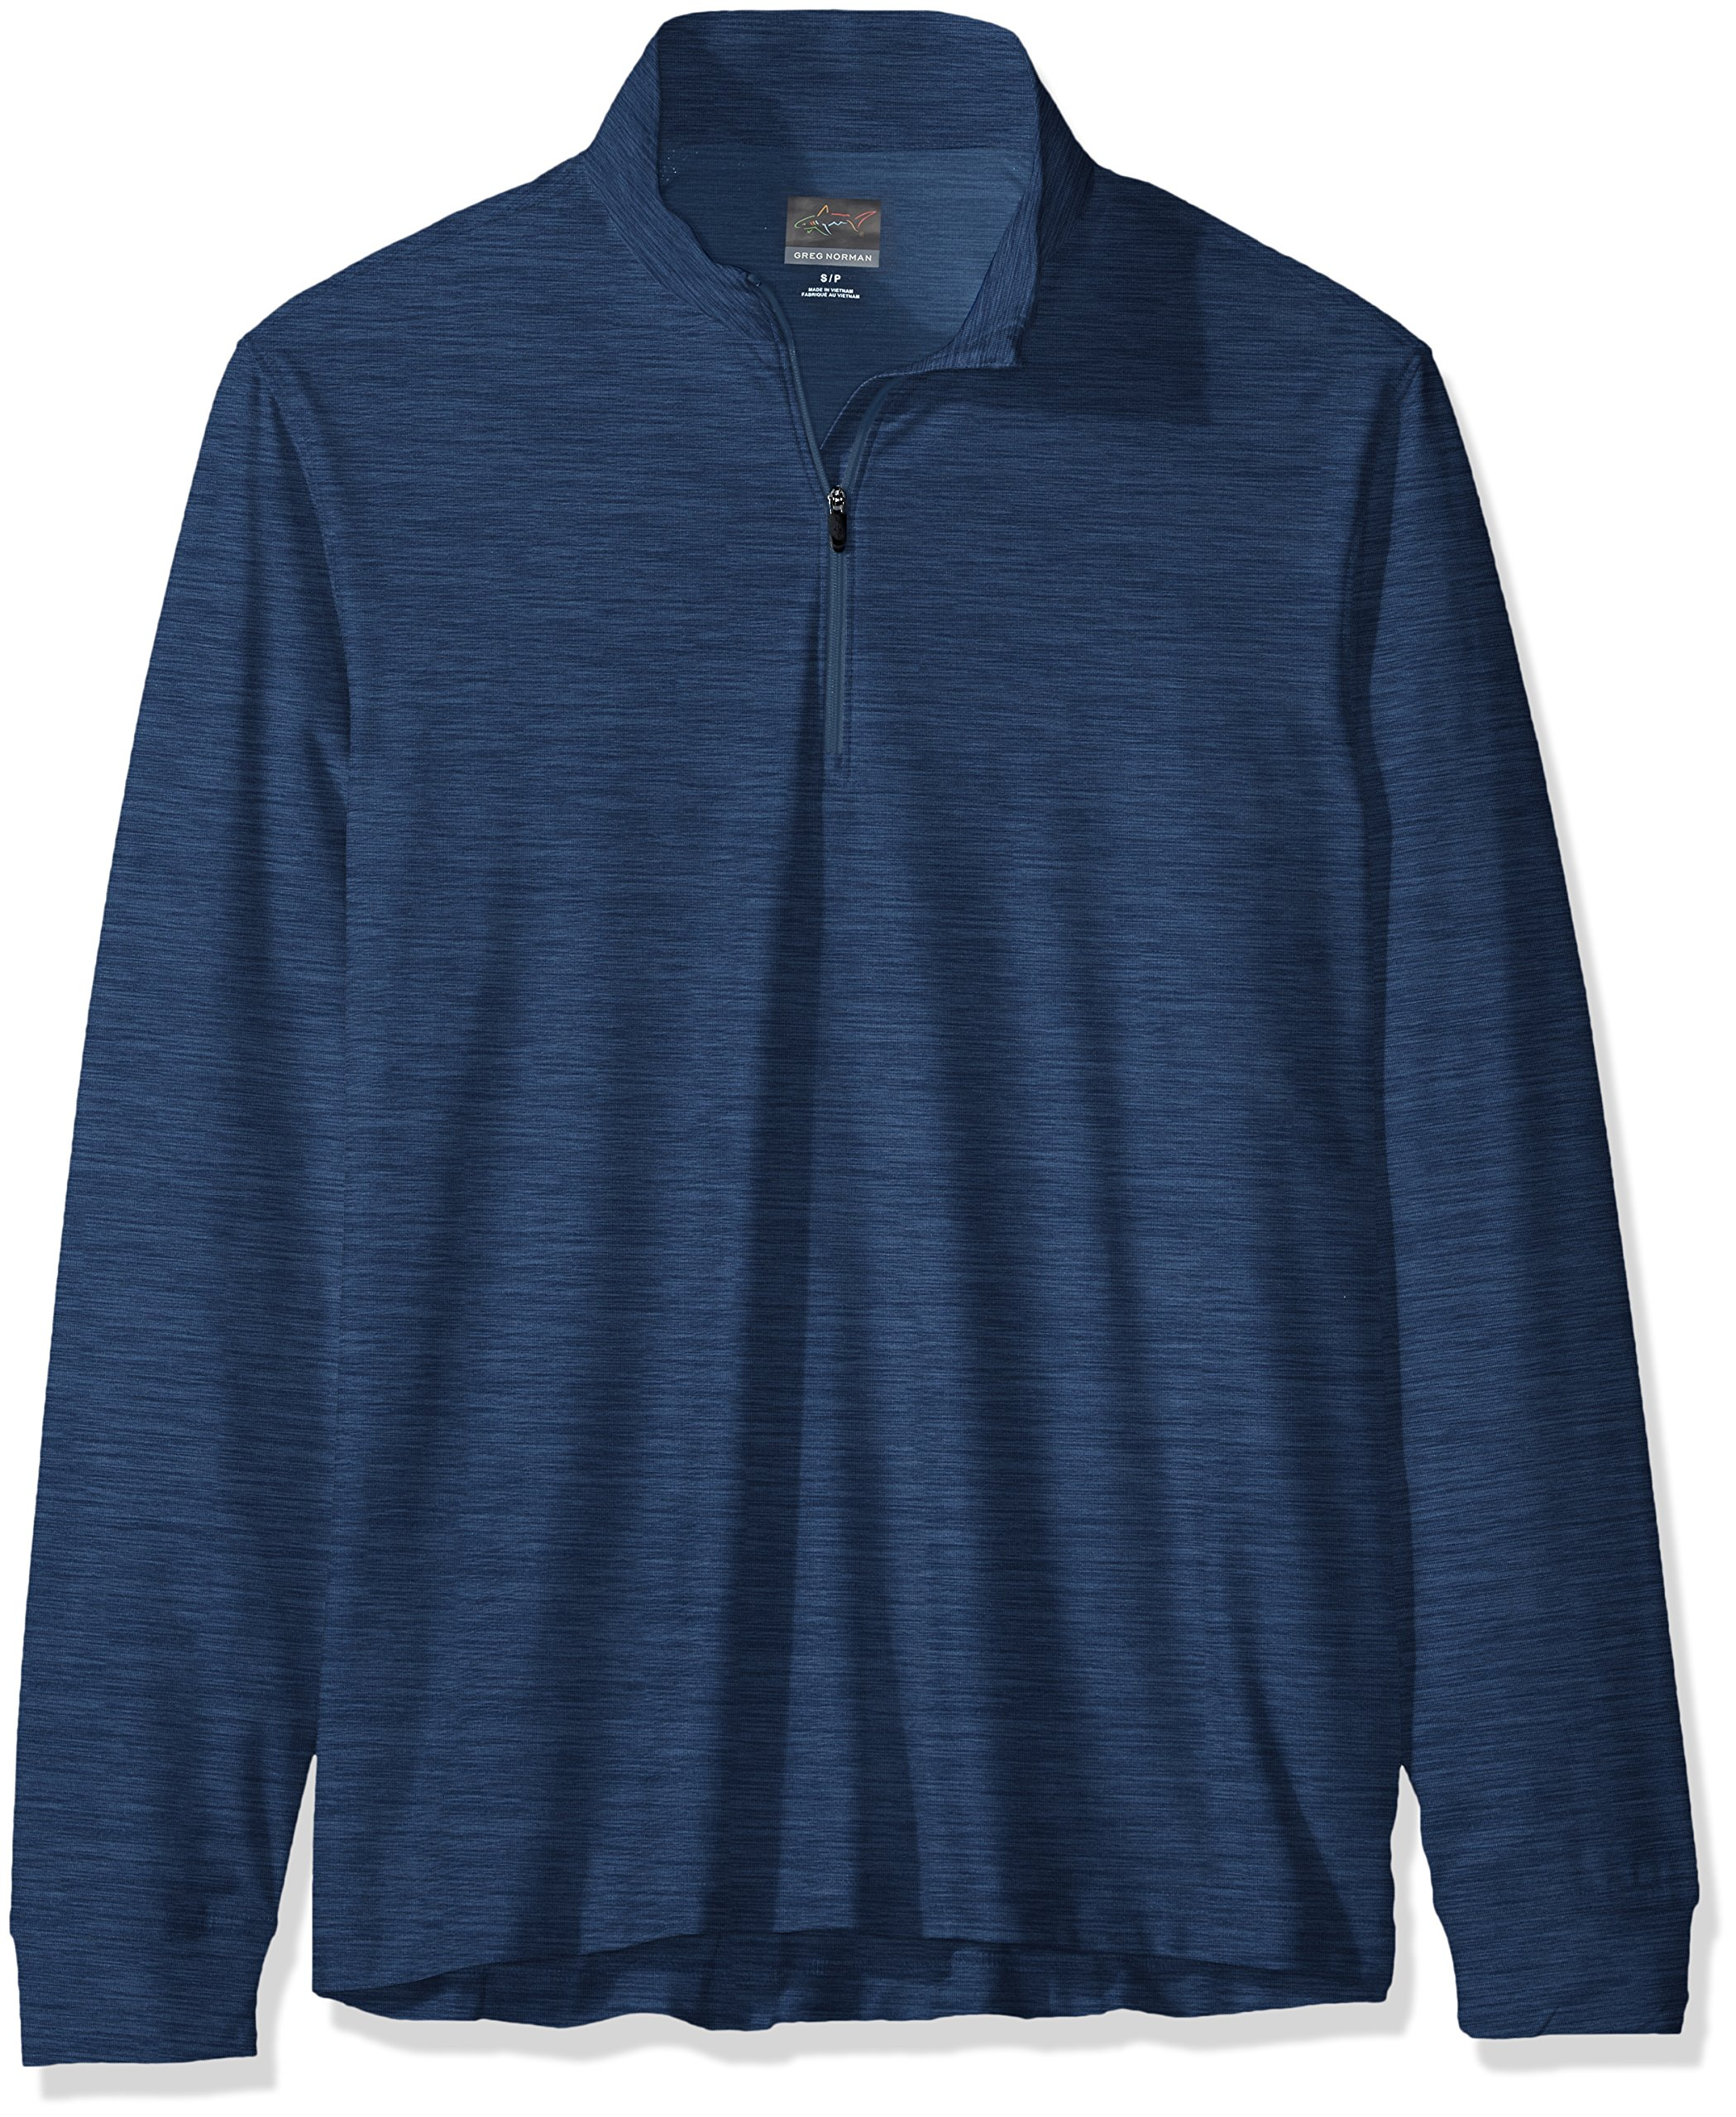 Greg Norman Heather 1/4-Zip Mock, Tidal Blue Heather, X-Large